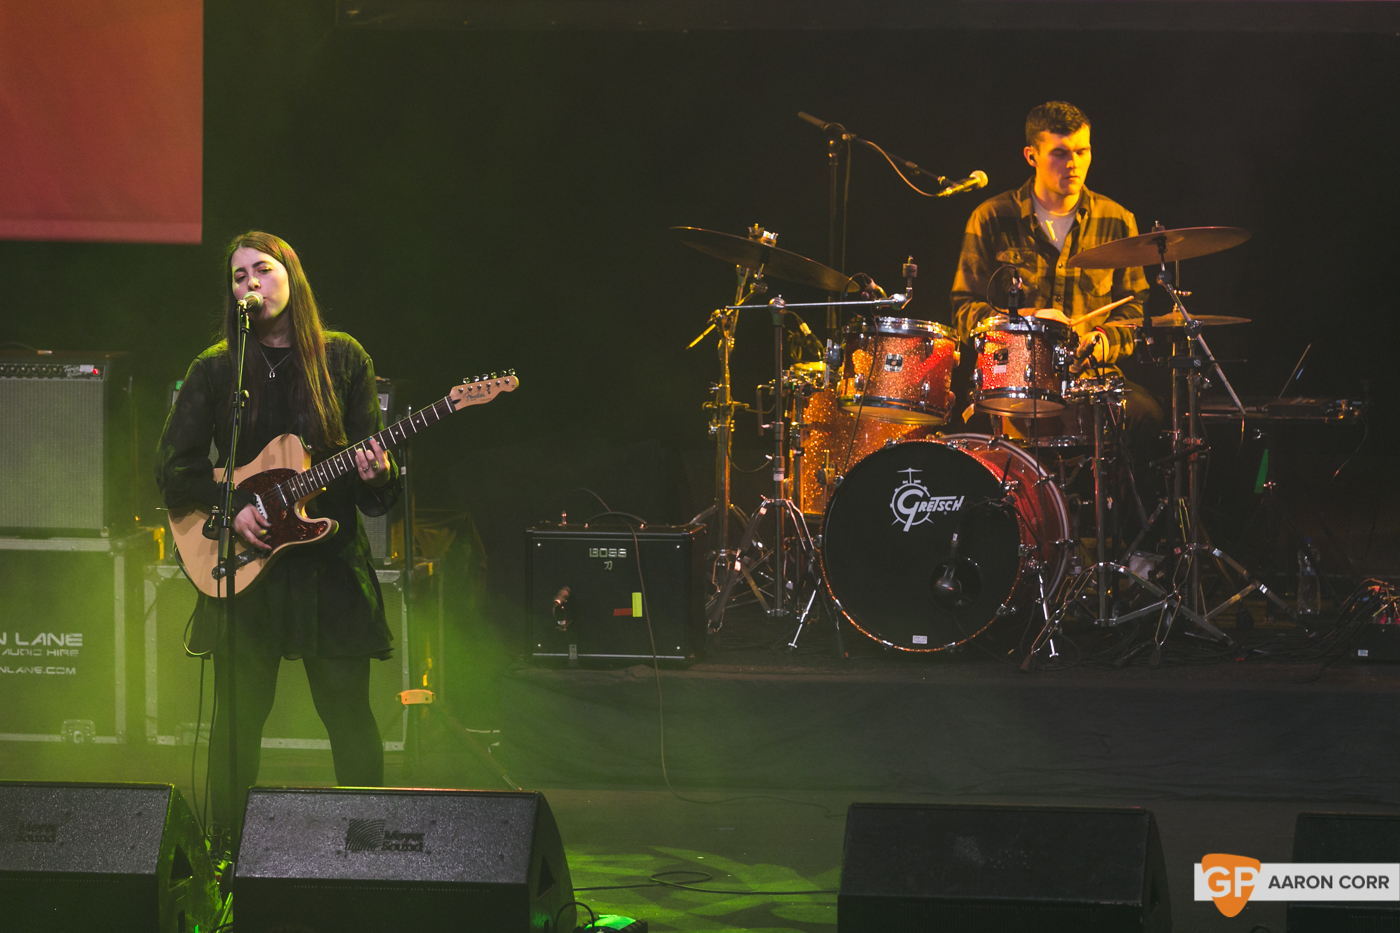 Sorcha Richardson at Choice Music Prize 2020 in Vicar Street, Dublin on 05-Mar-20 by Aaron Corr-5309